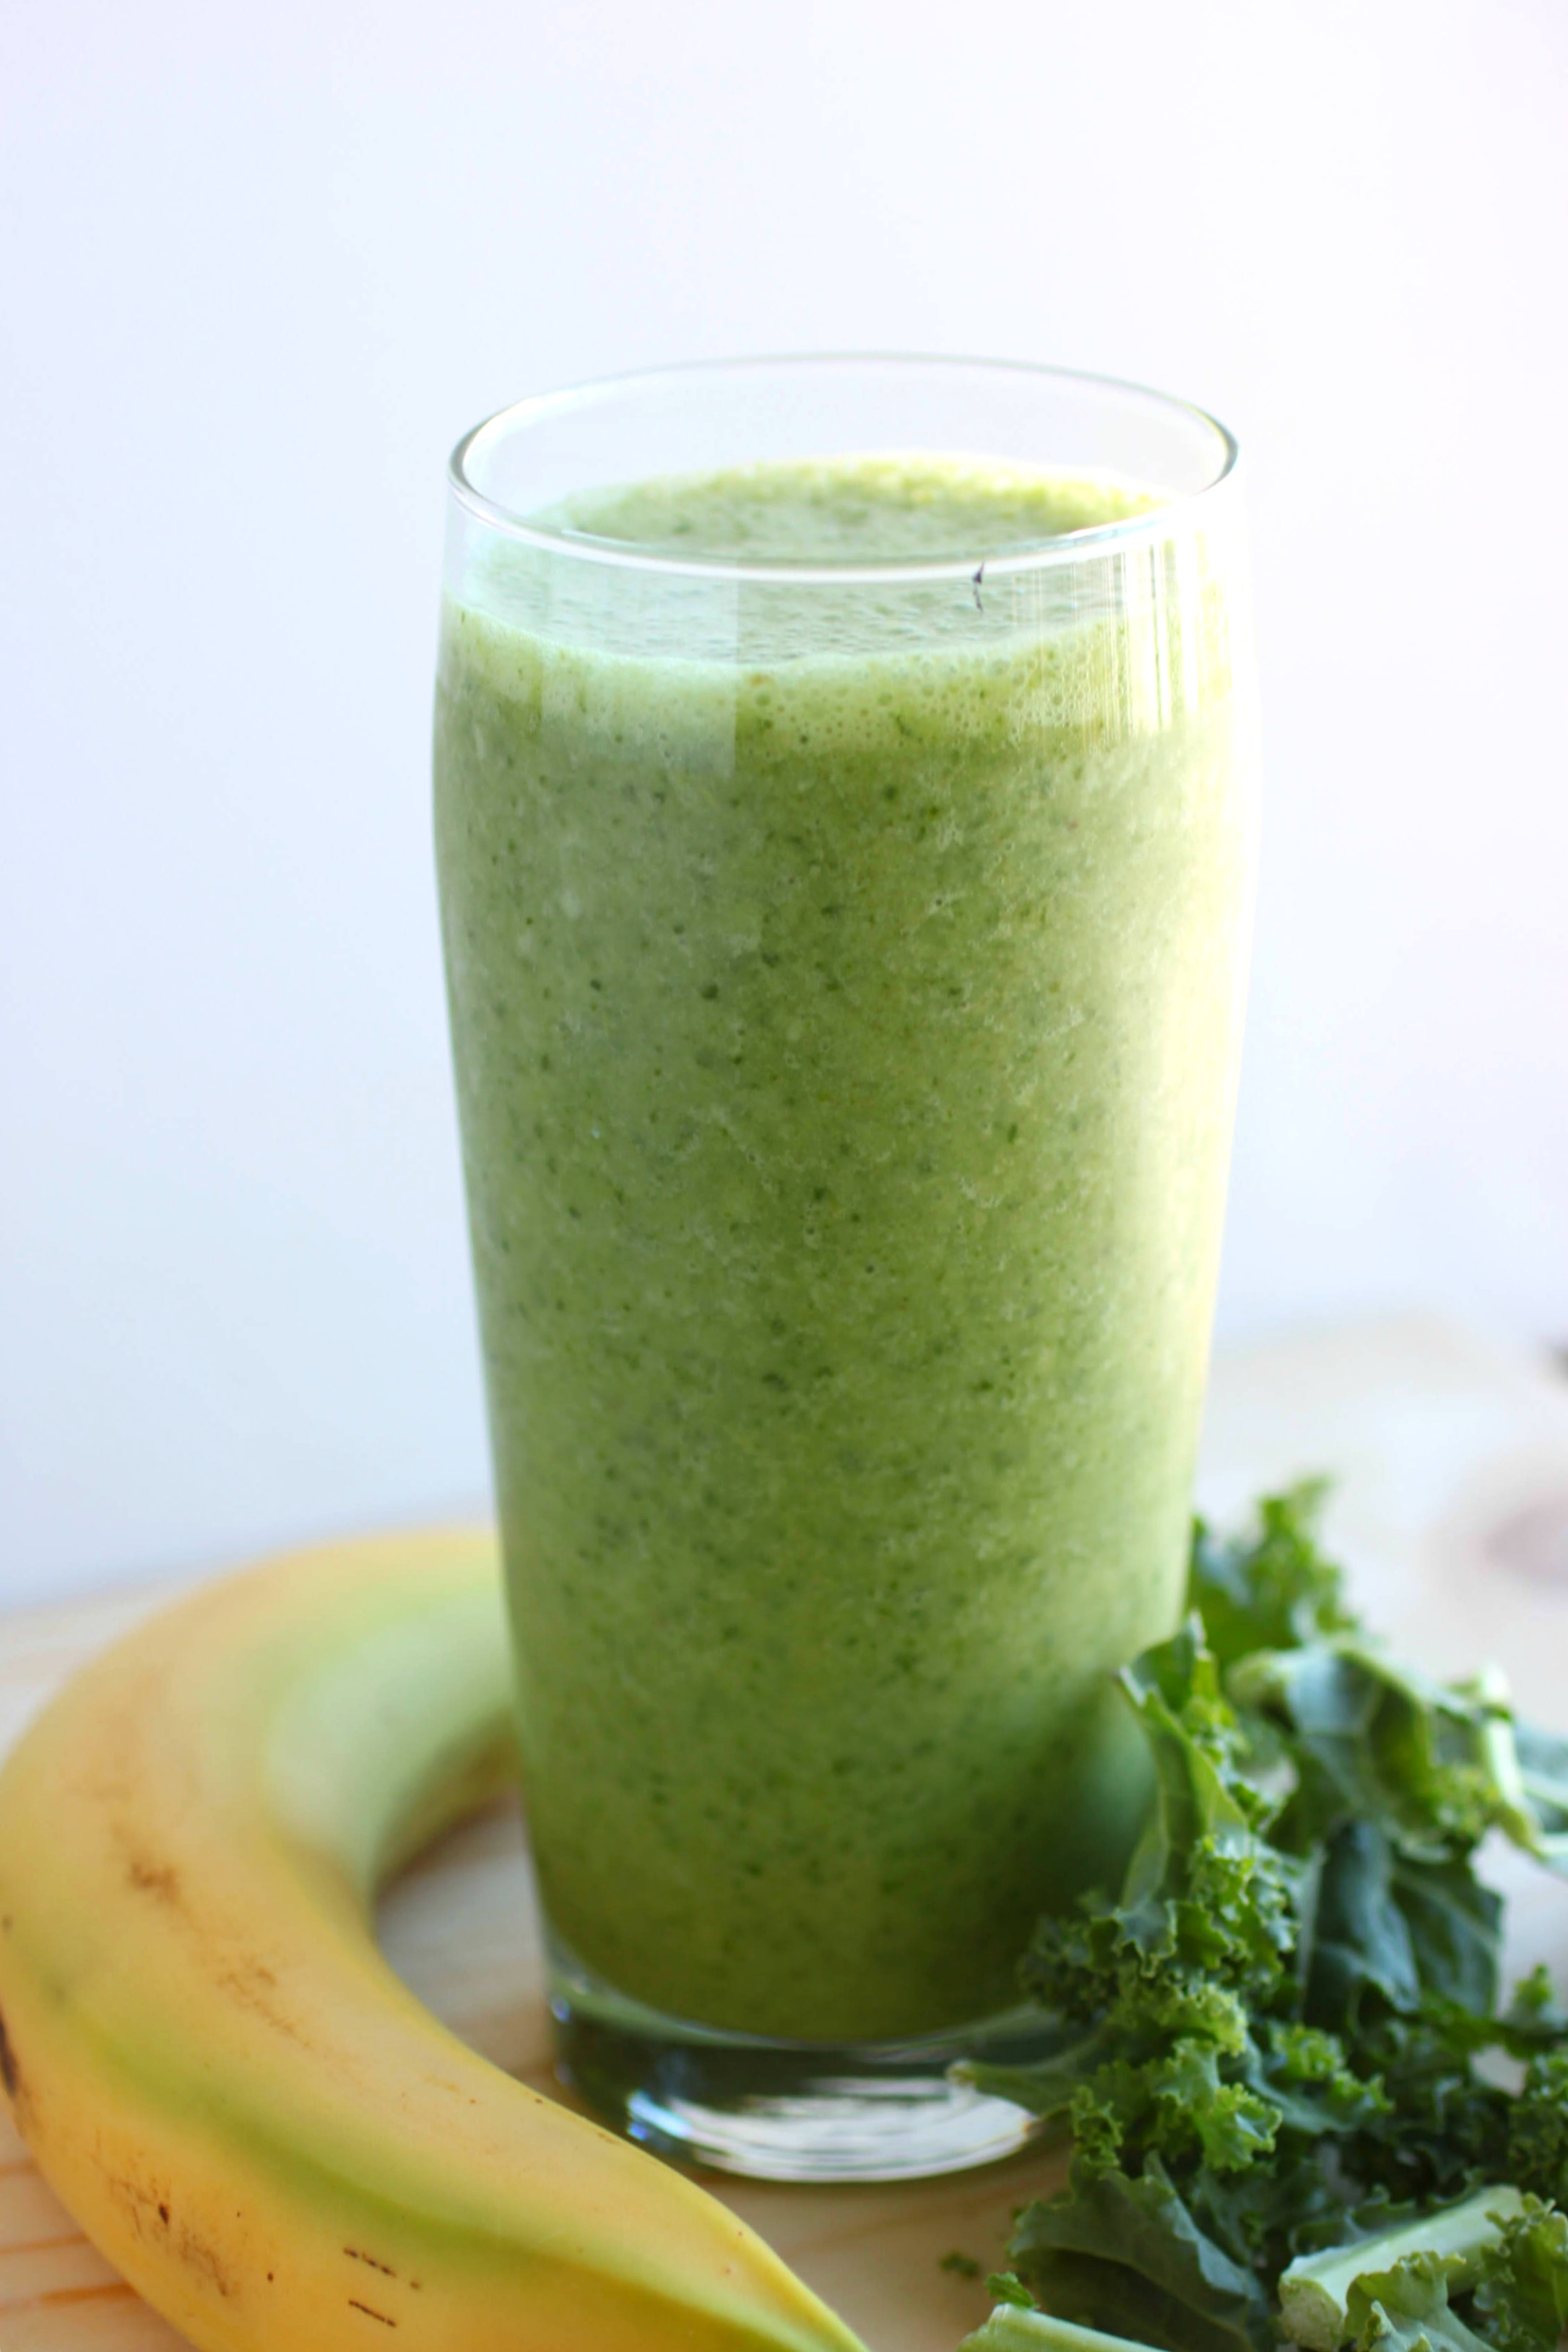 Kale and banana smoothie | My Cooking Spot